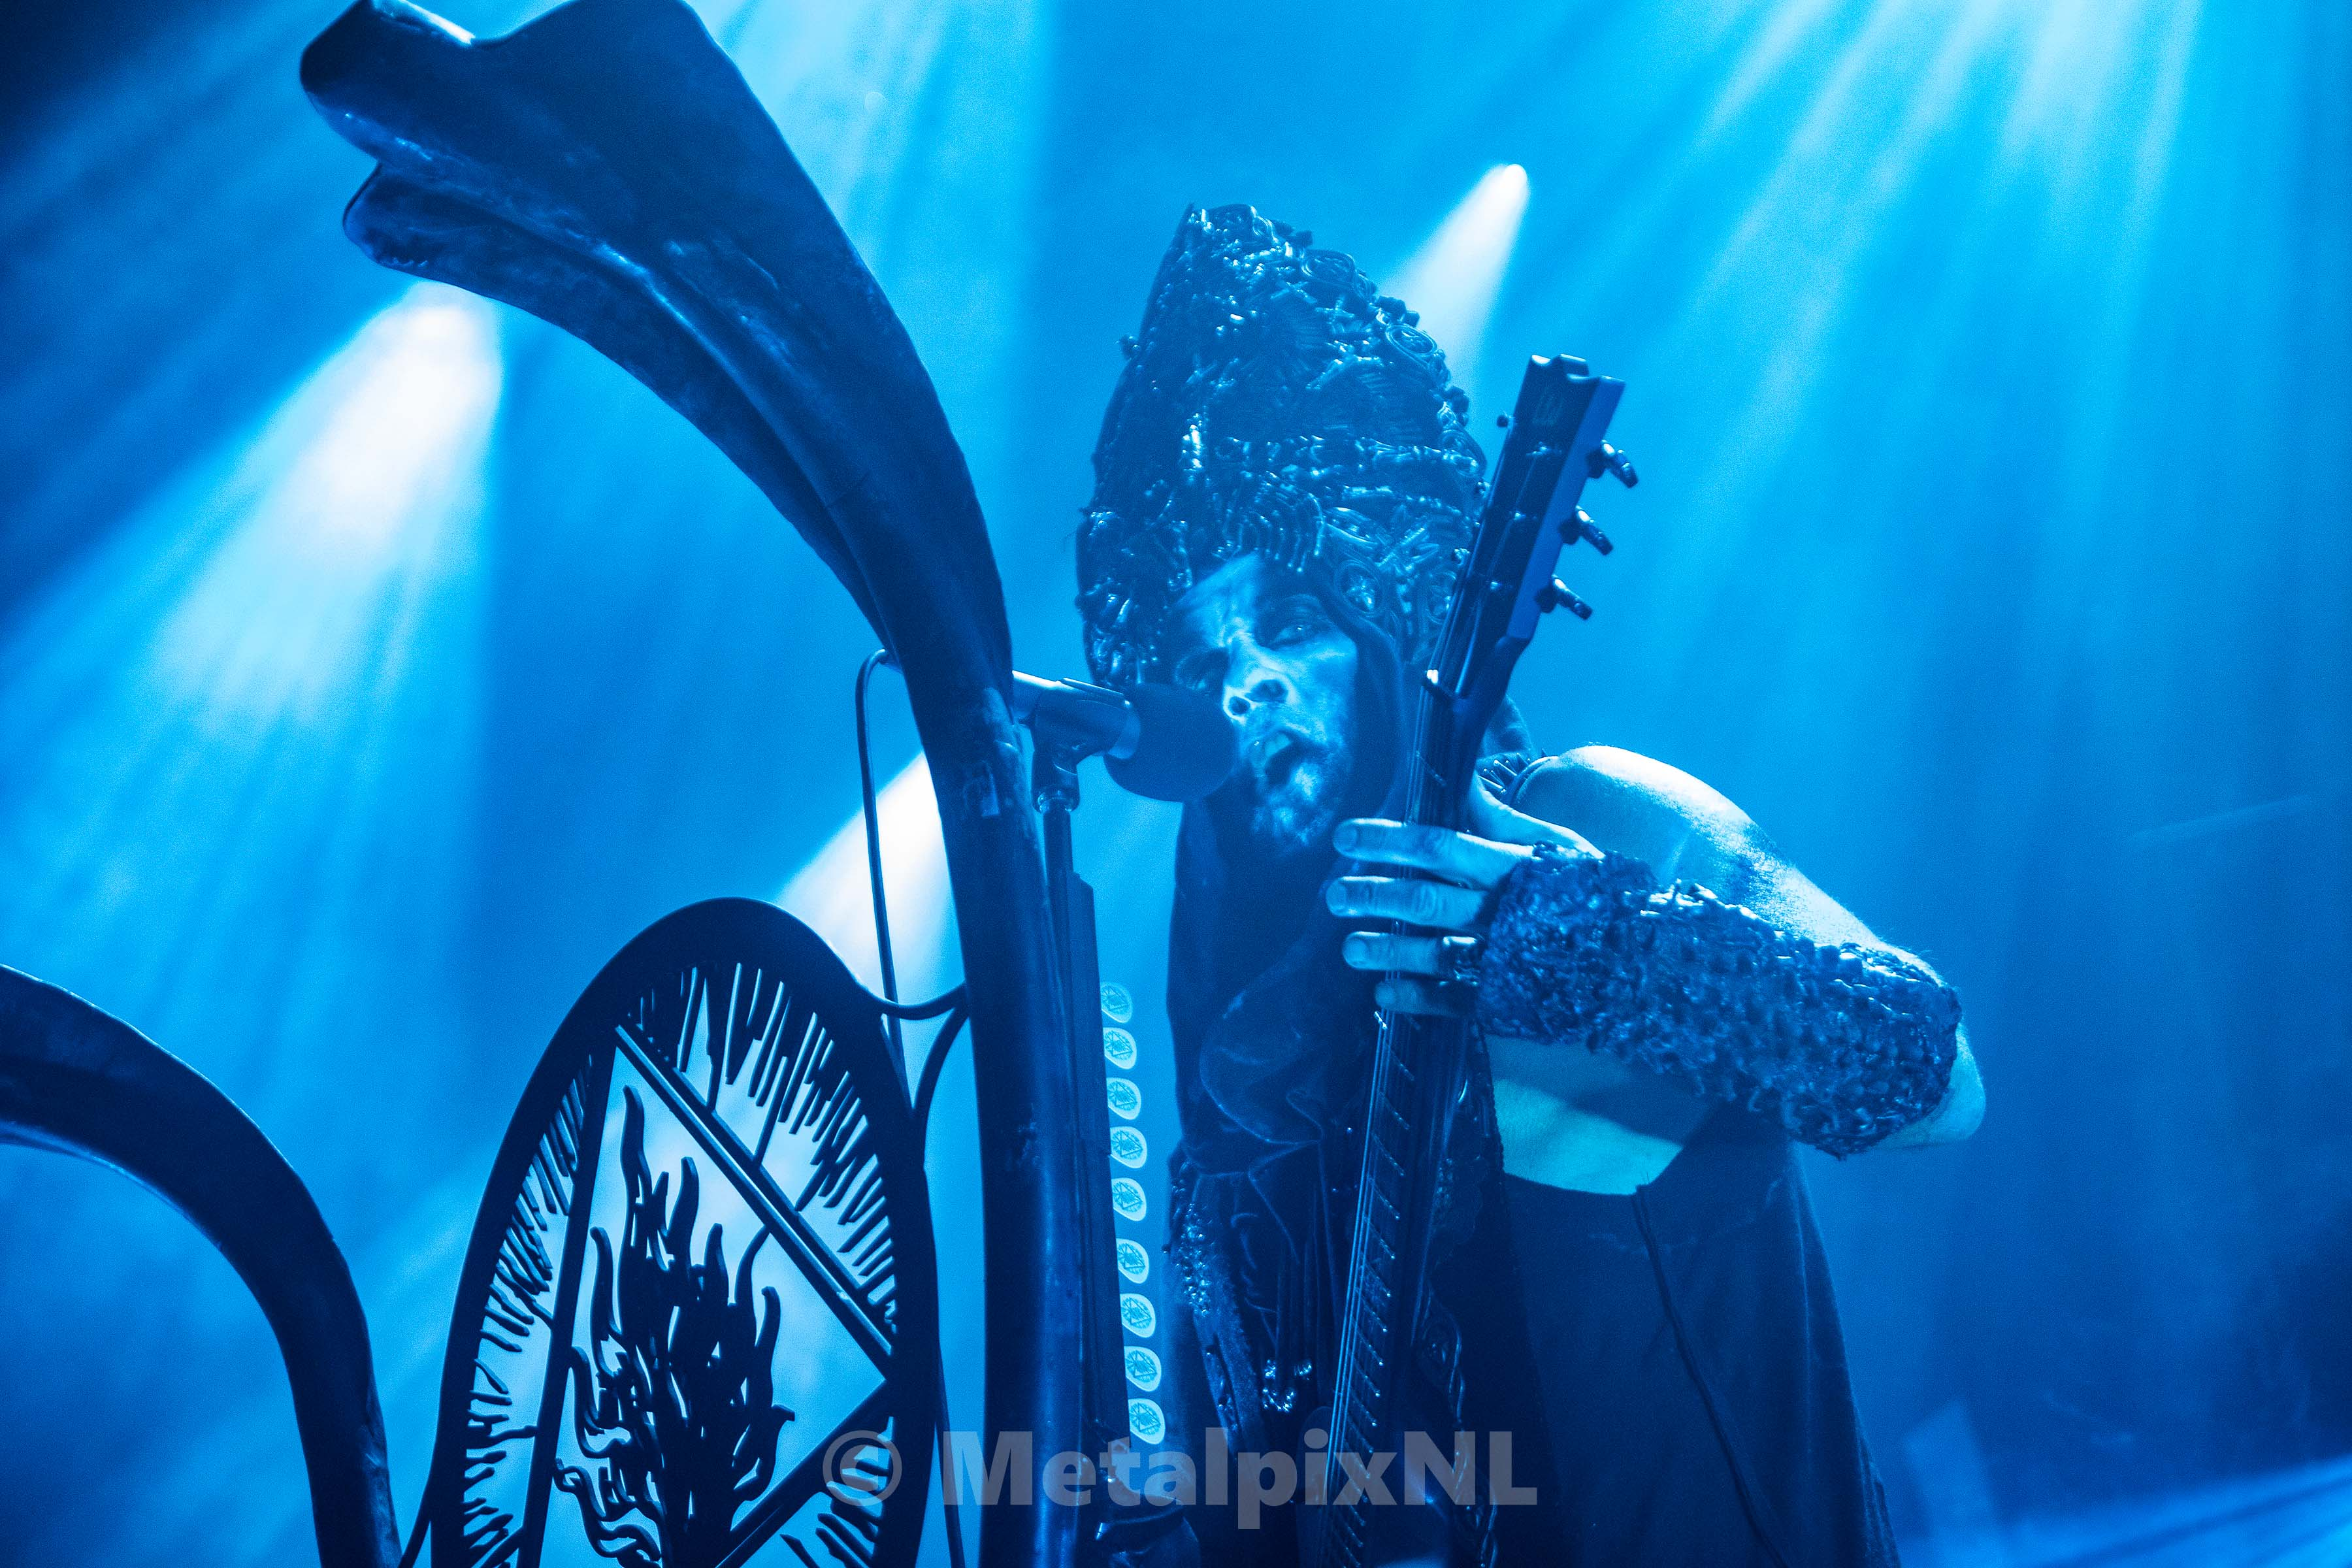 Ecclesia Diabolica Evropa: Behemoth / At The Gates /WITTR – Tivoli Vredenburg Utrecht, 02-02-2019